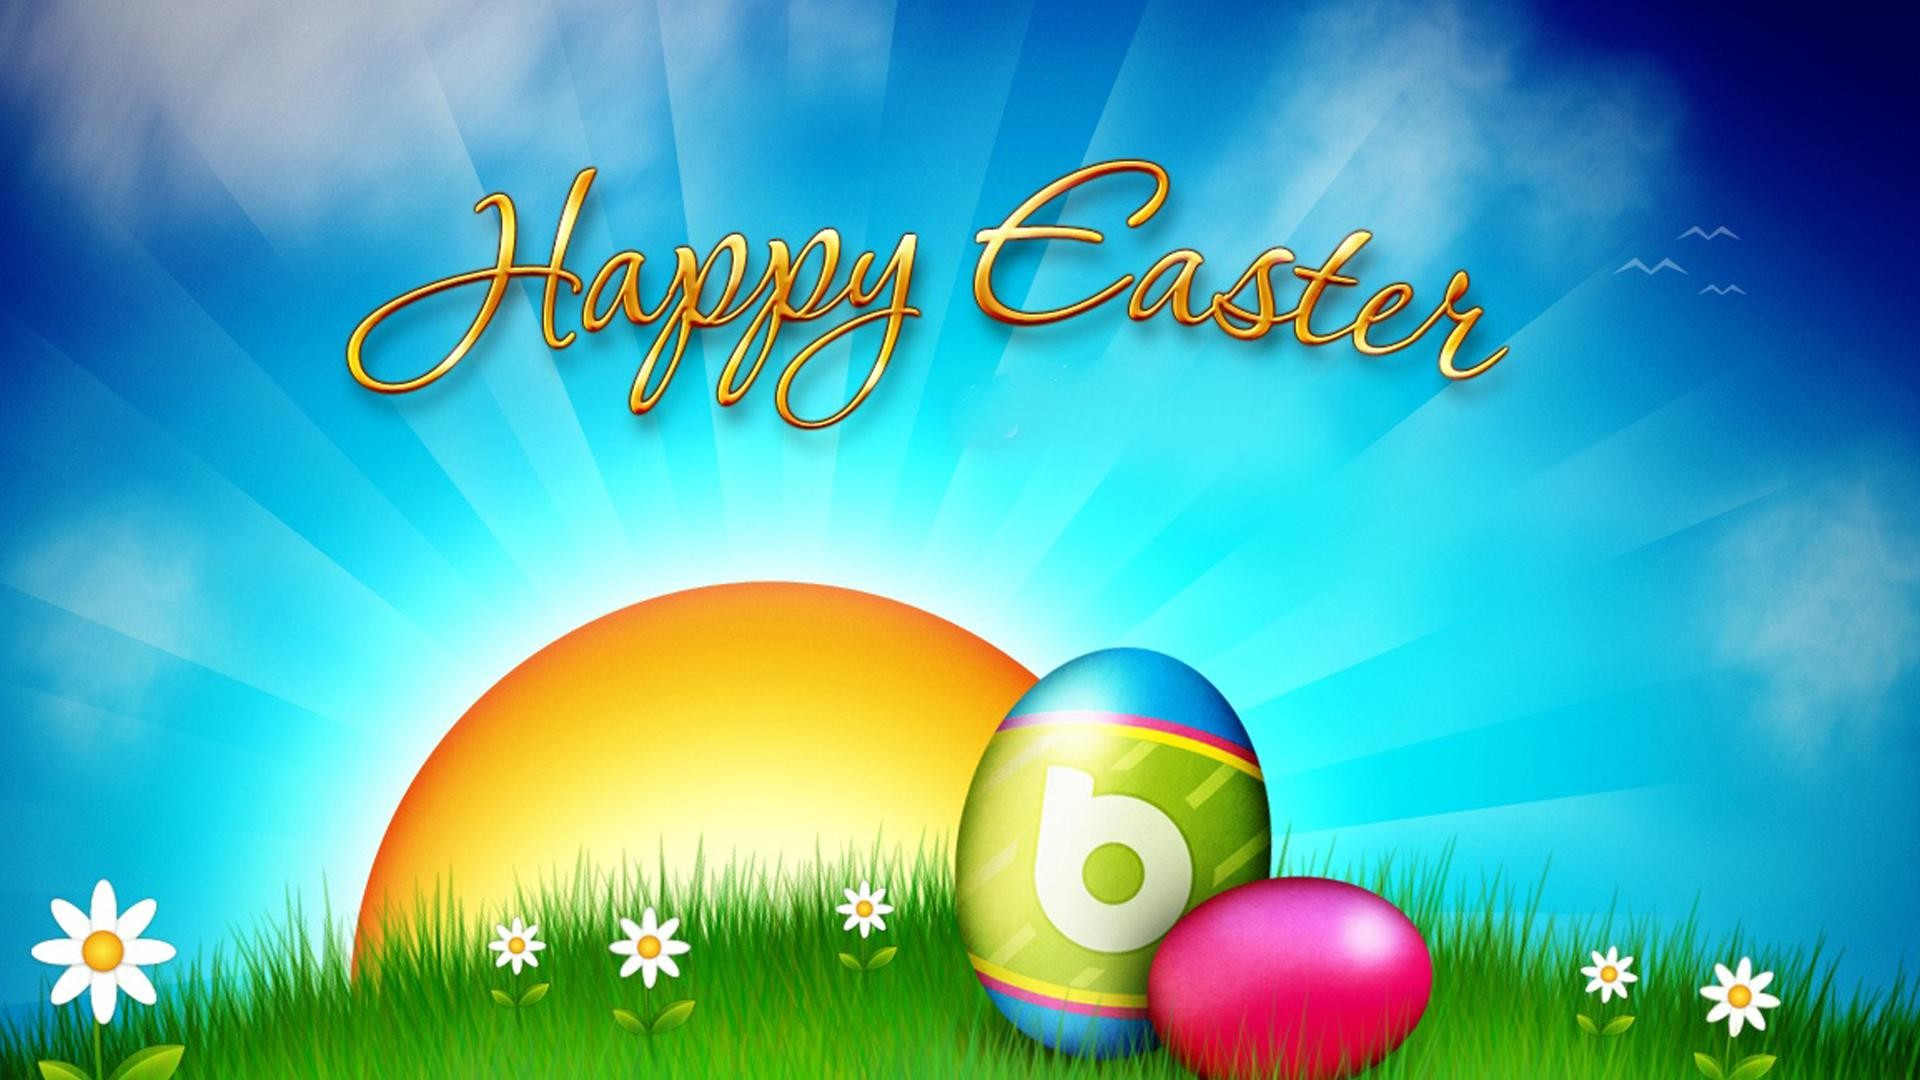 1920x1080 15 Happy Easter 2017 Wallpapers For Desktop - Educational Entertainment